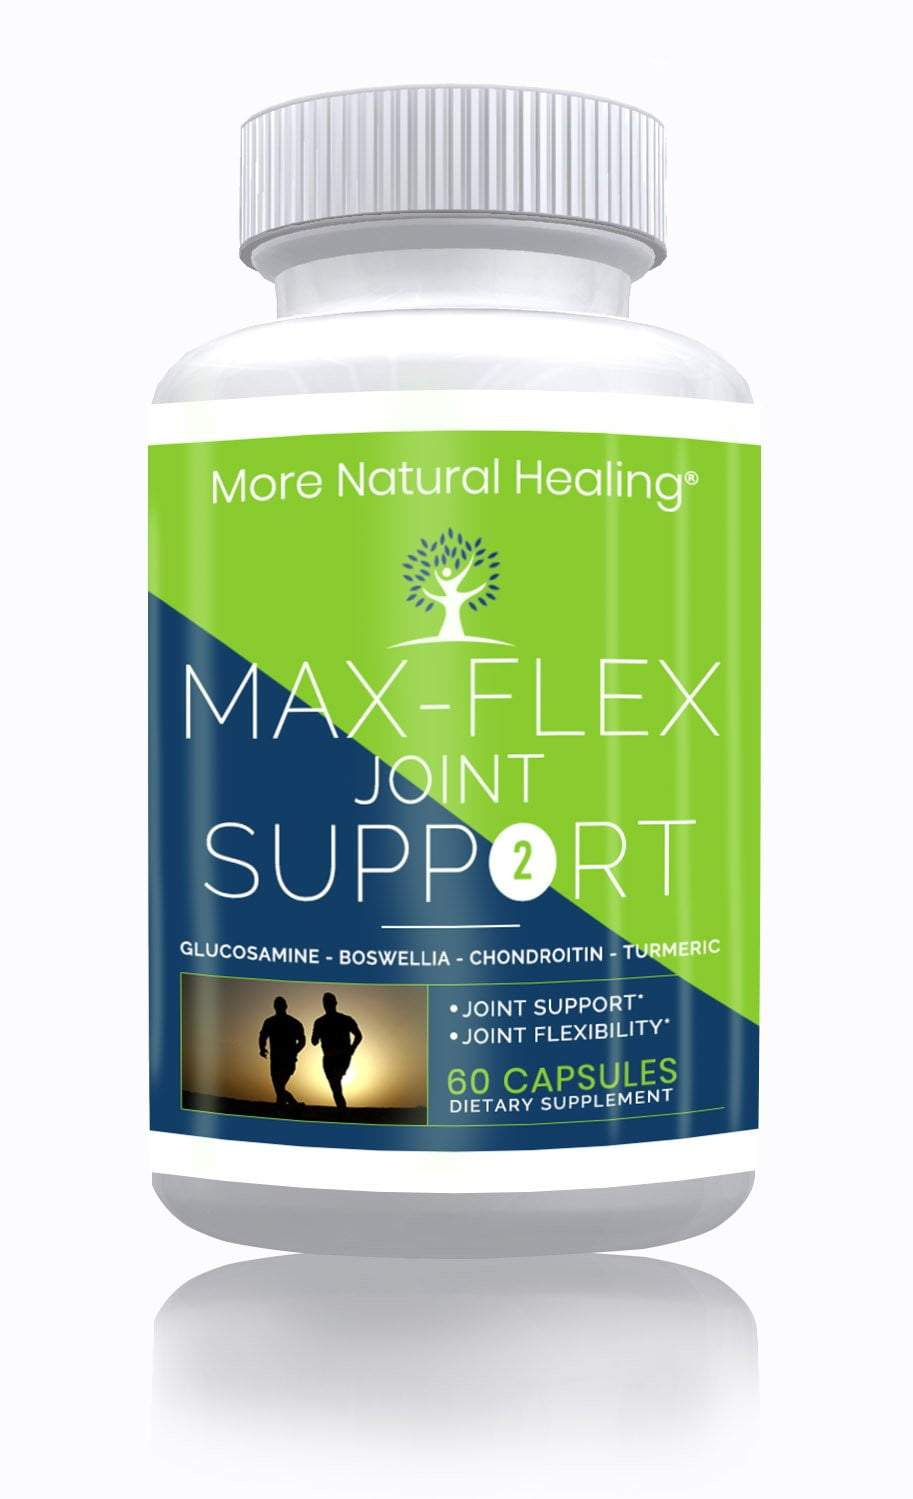 Max Flex Joint Support Capsules Anti-Inflammatory and Anti-Aging Glucosamine Supplement - More Natural Healing